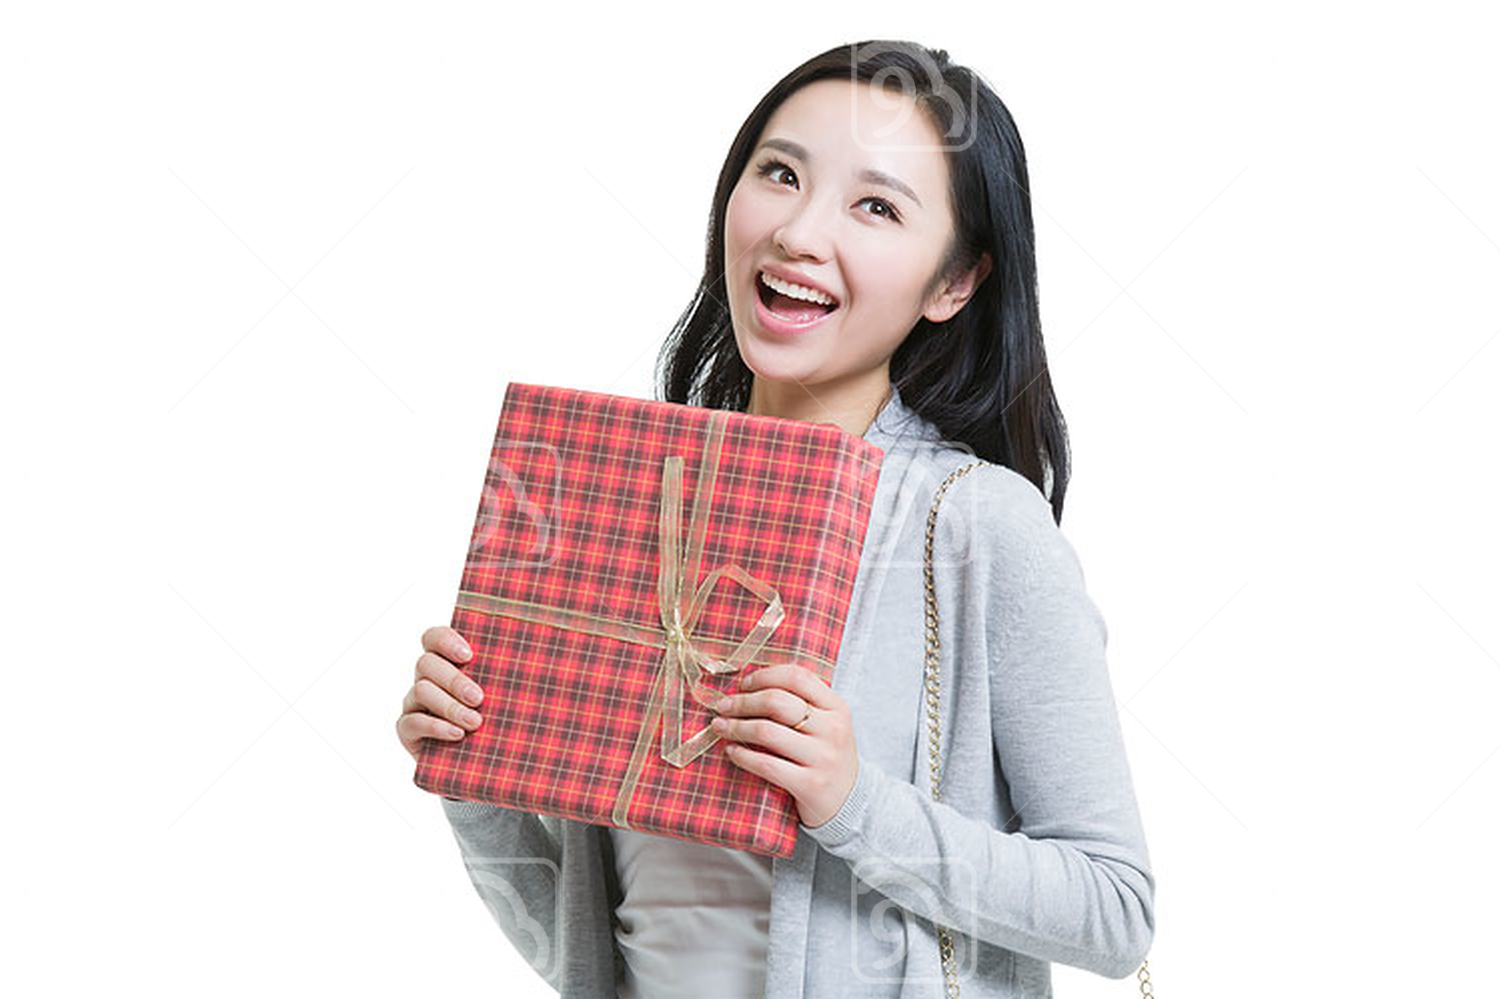 Young Chinese woman holding a gift